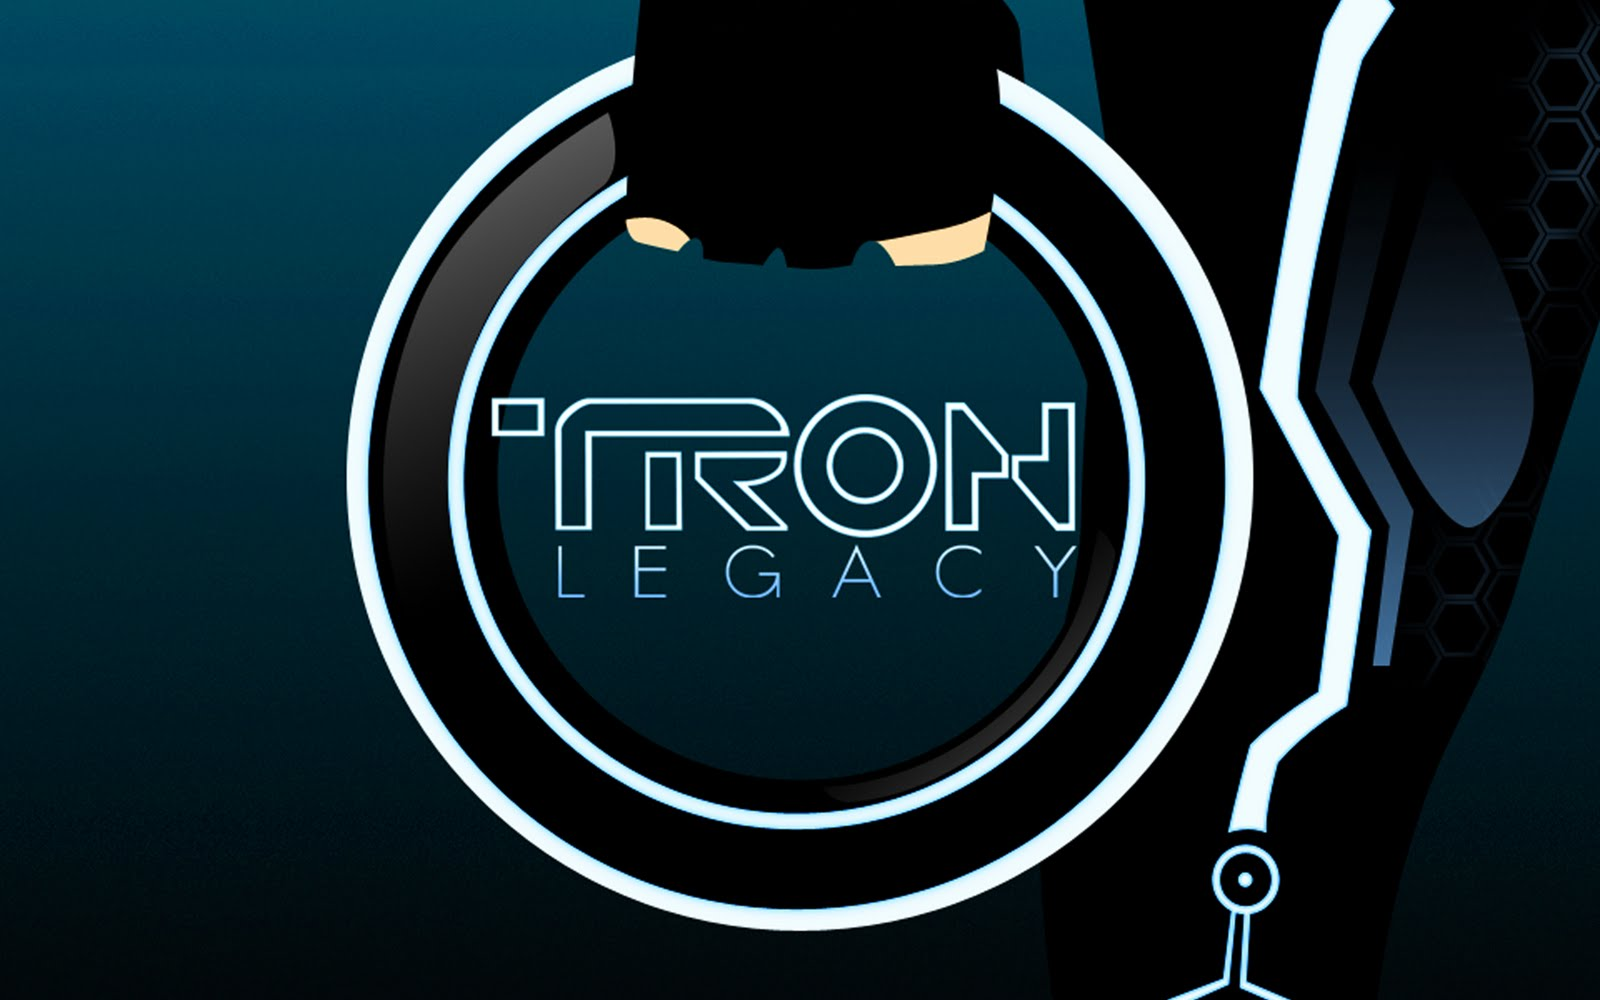 movie logo of disney's tron: legacy desktop wallpaper